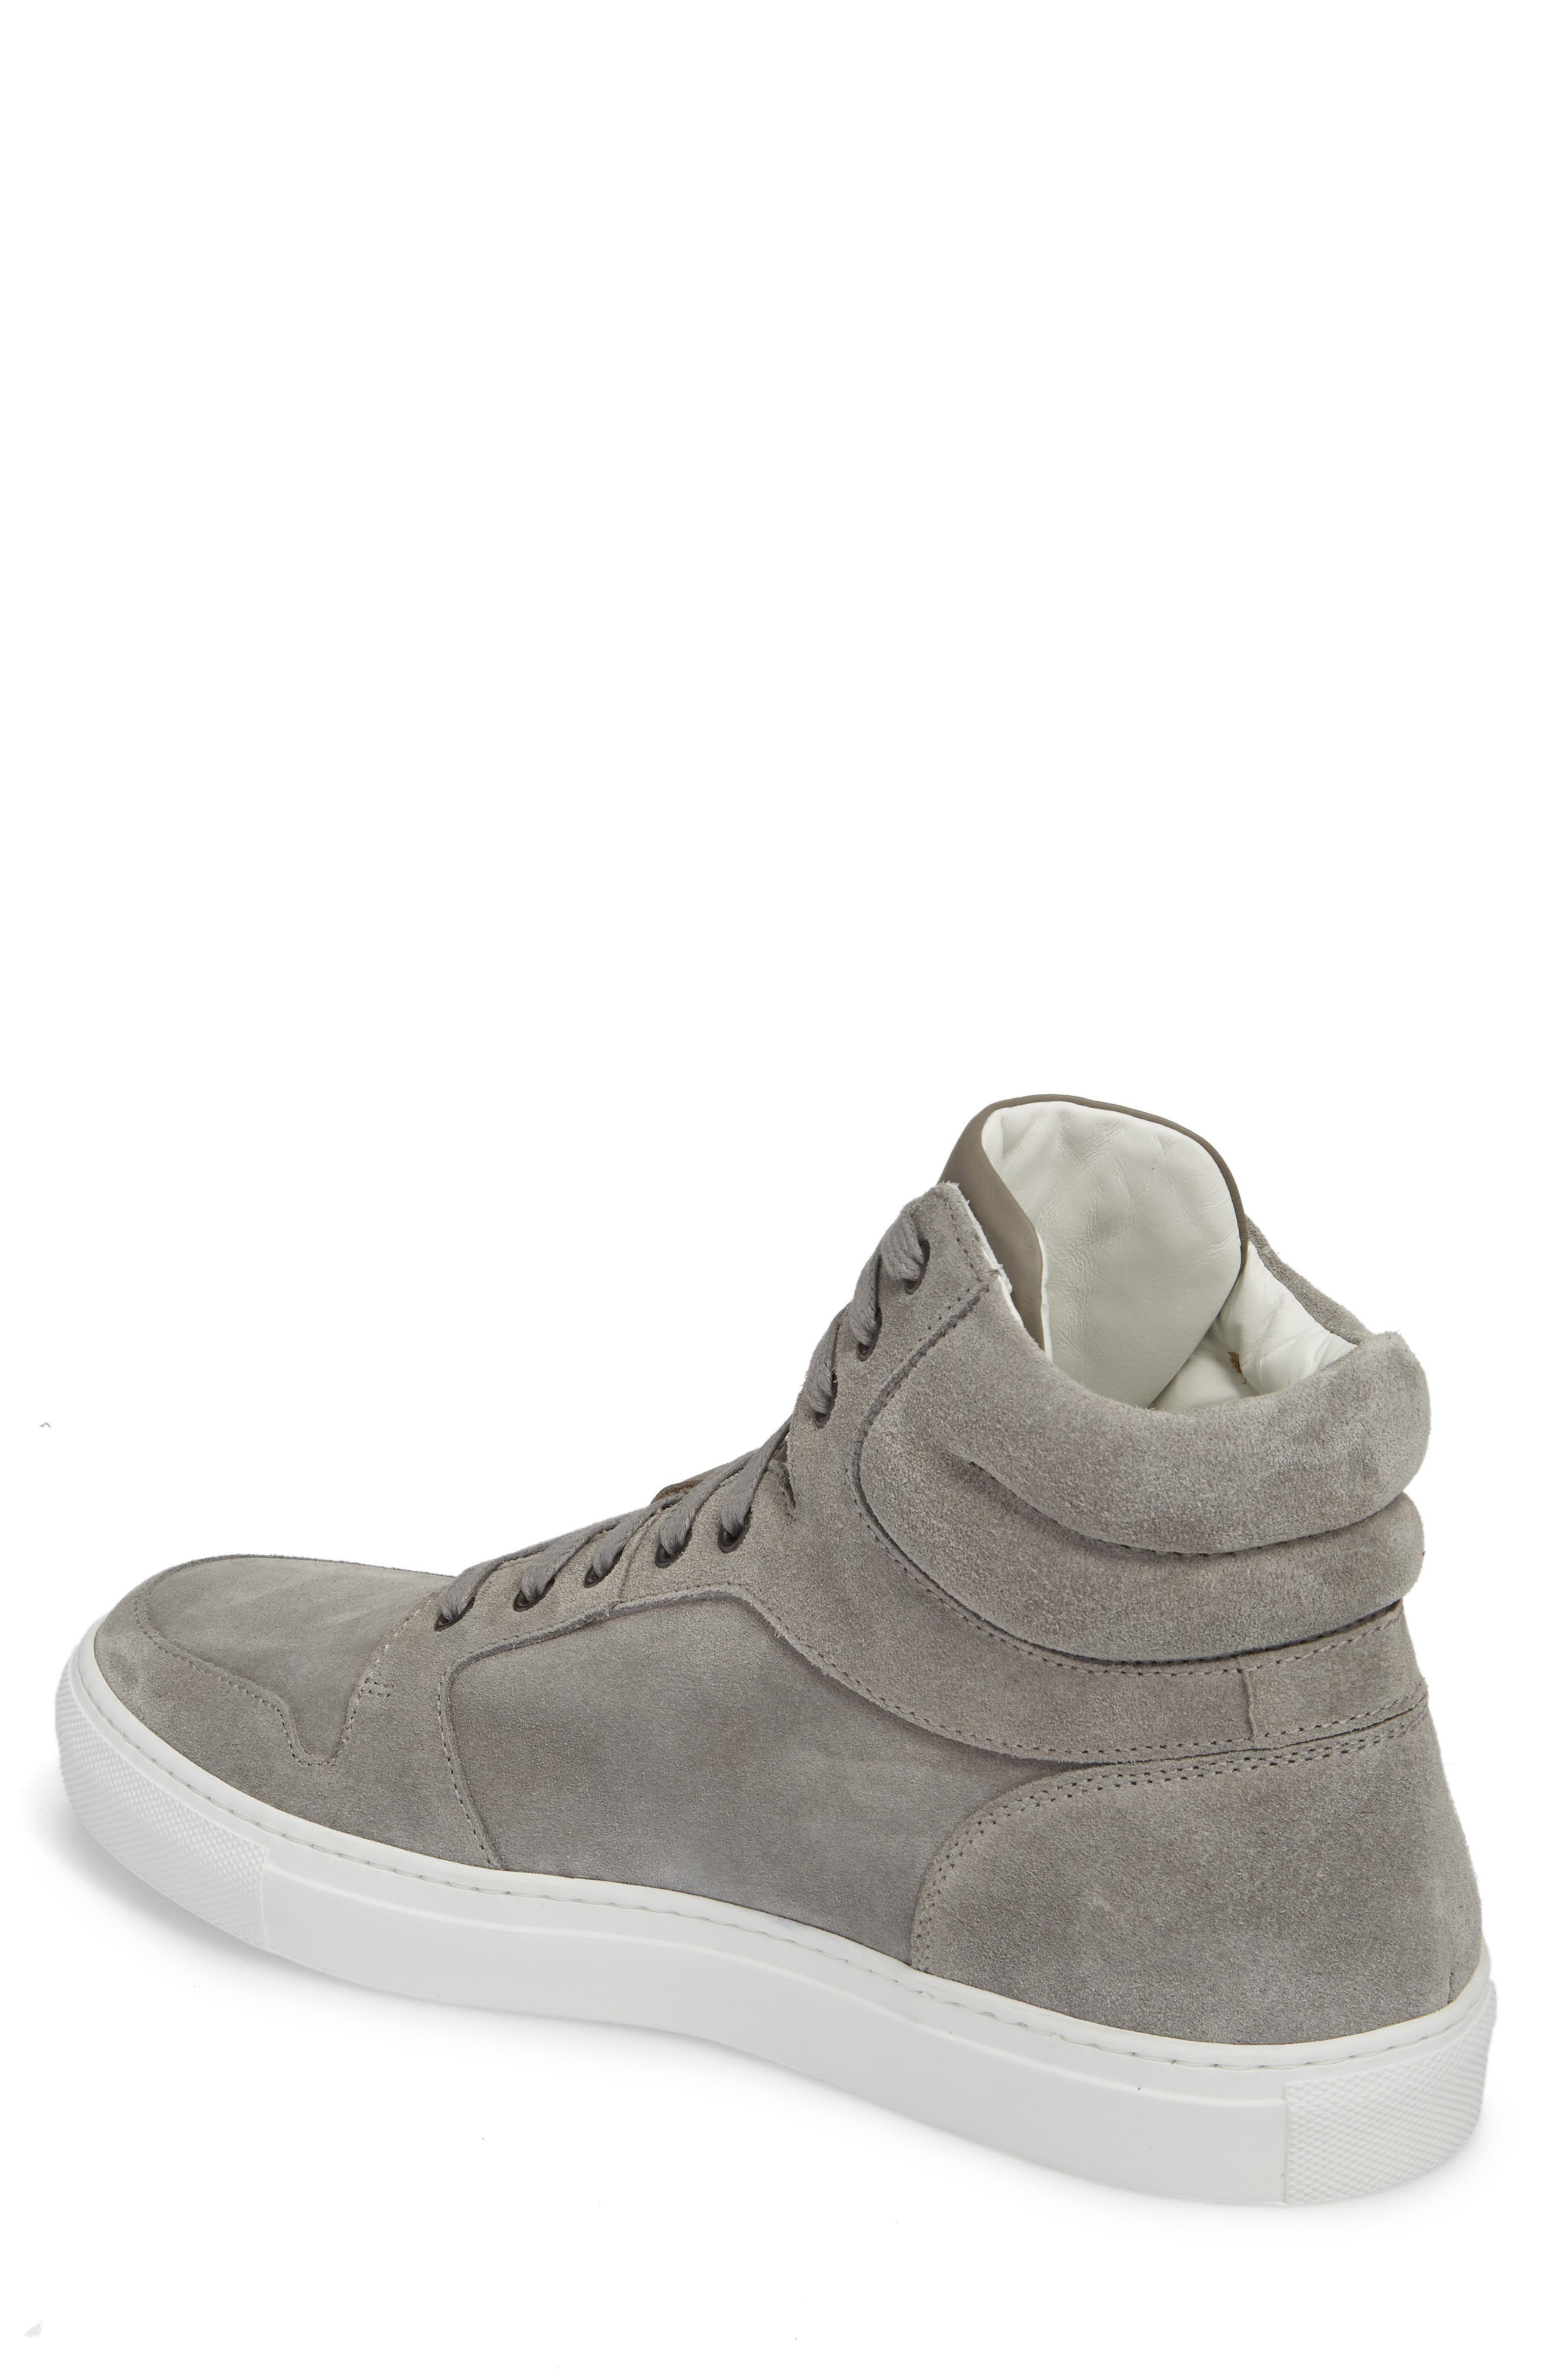 Belmont High Top Sneaker,                             Alternate thumbnail 2, color,                             Grey Suede